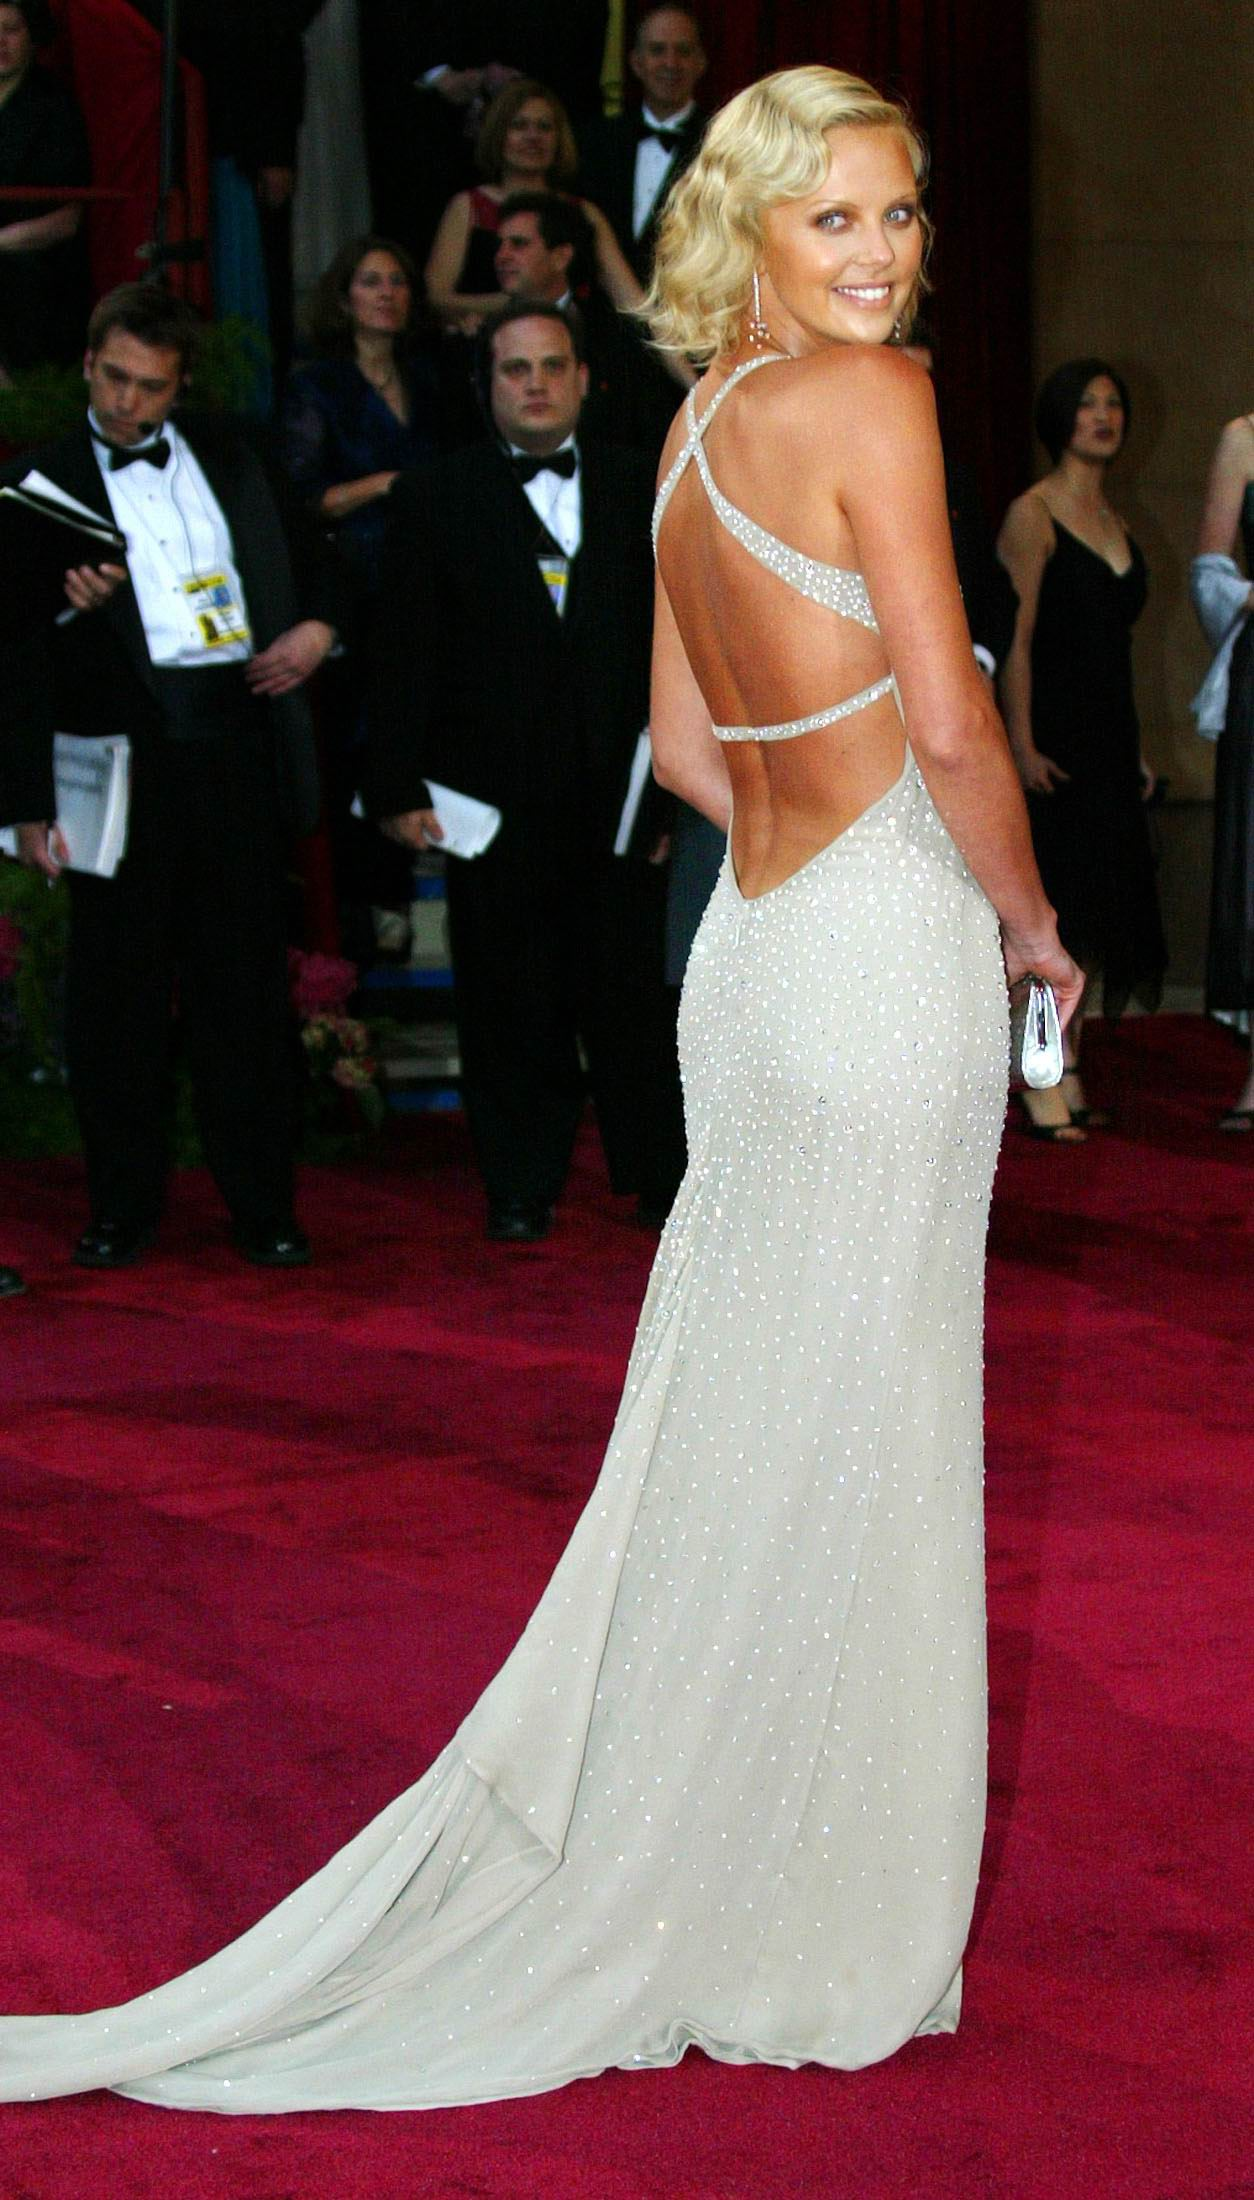 Style Crush: Charlize Theron's Fashionable Looks | Fashion ...  Style Crush: Ch...